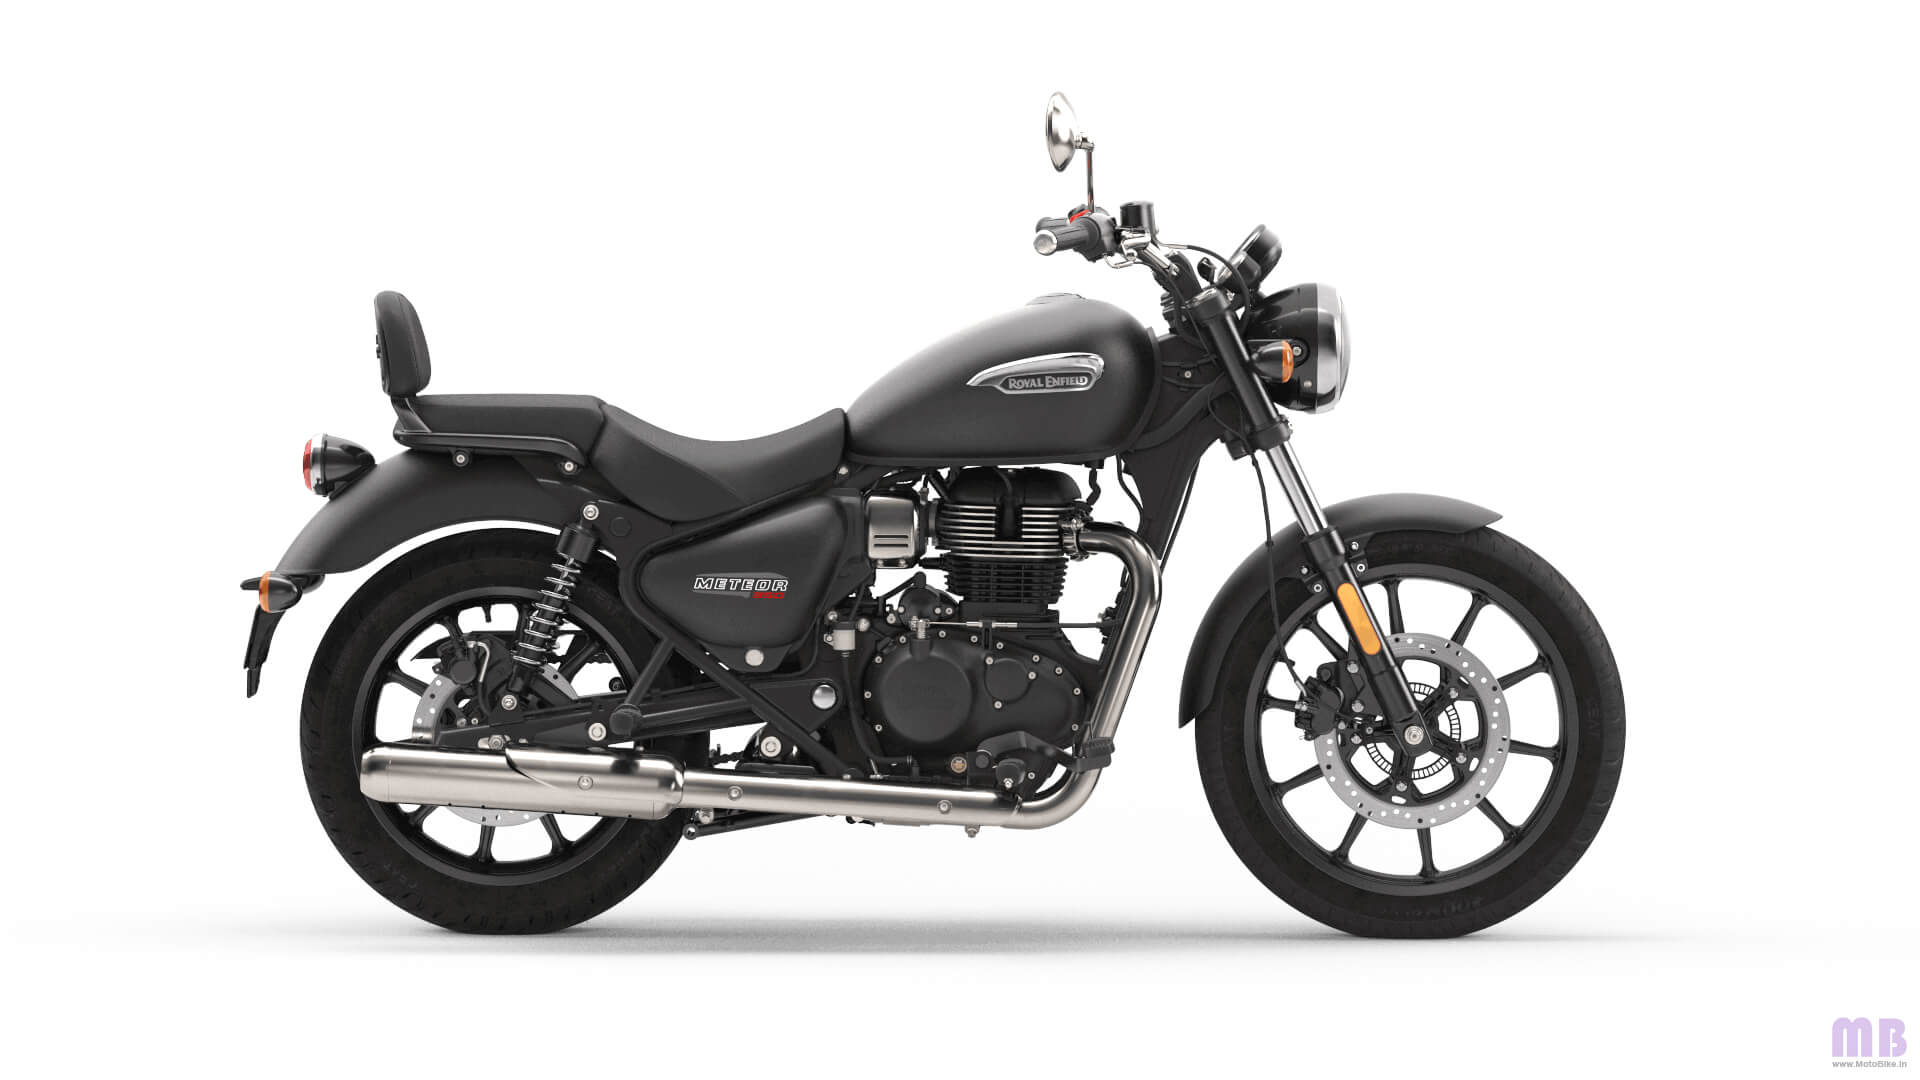 Royal Enfield Meteor 350 - Stellar Black